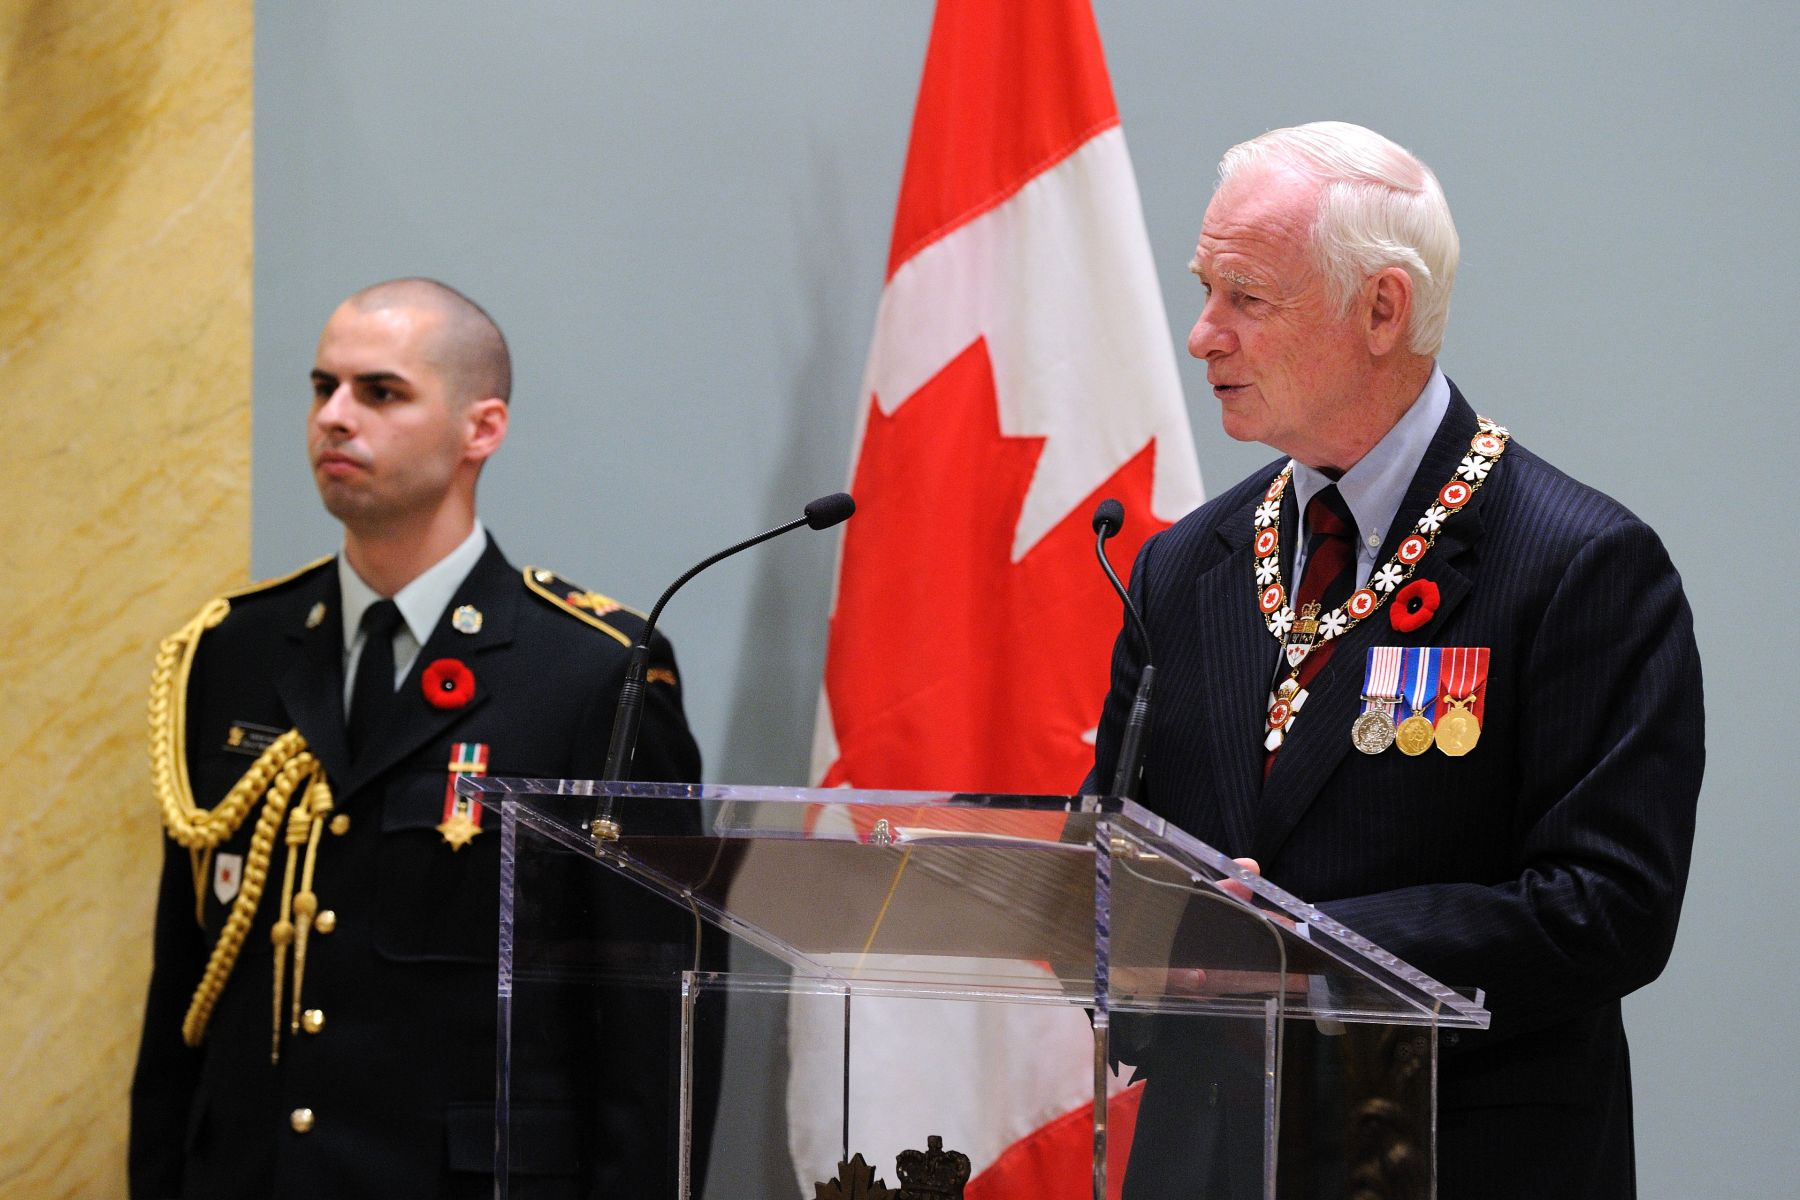 """Because at its core, the Order of Canada is about excellence, achievement, innovation, and a job more than well done,"" said His Excellency. ""Perhaps even more importantly, because its motto serves to remind us that there is still much more about which we, as Canadians, can dream, so much more that we should give and must do. For it obliges us to fight the temptation to become complacent about the responsibilities that we all have. We cannot suppose that someone else will stand up and serve. We must not assume that others will reach out and share, nor wait for another to uncover new ideas to move our country ahead."""